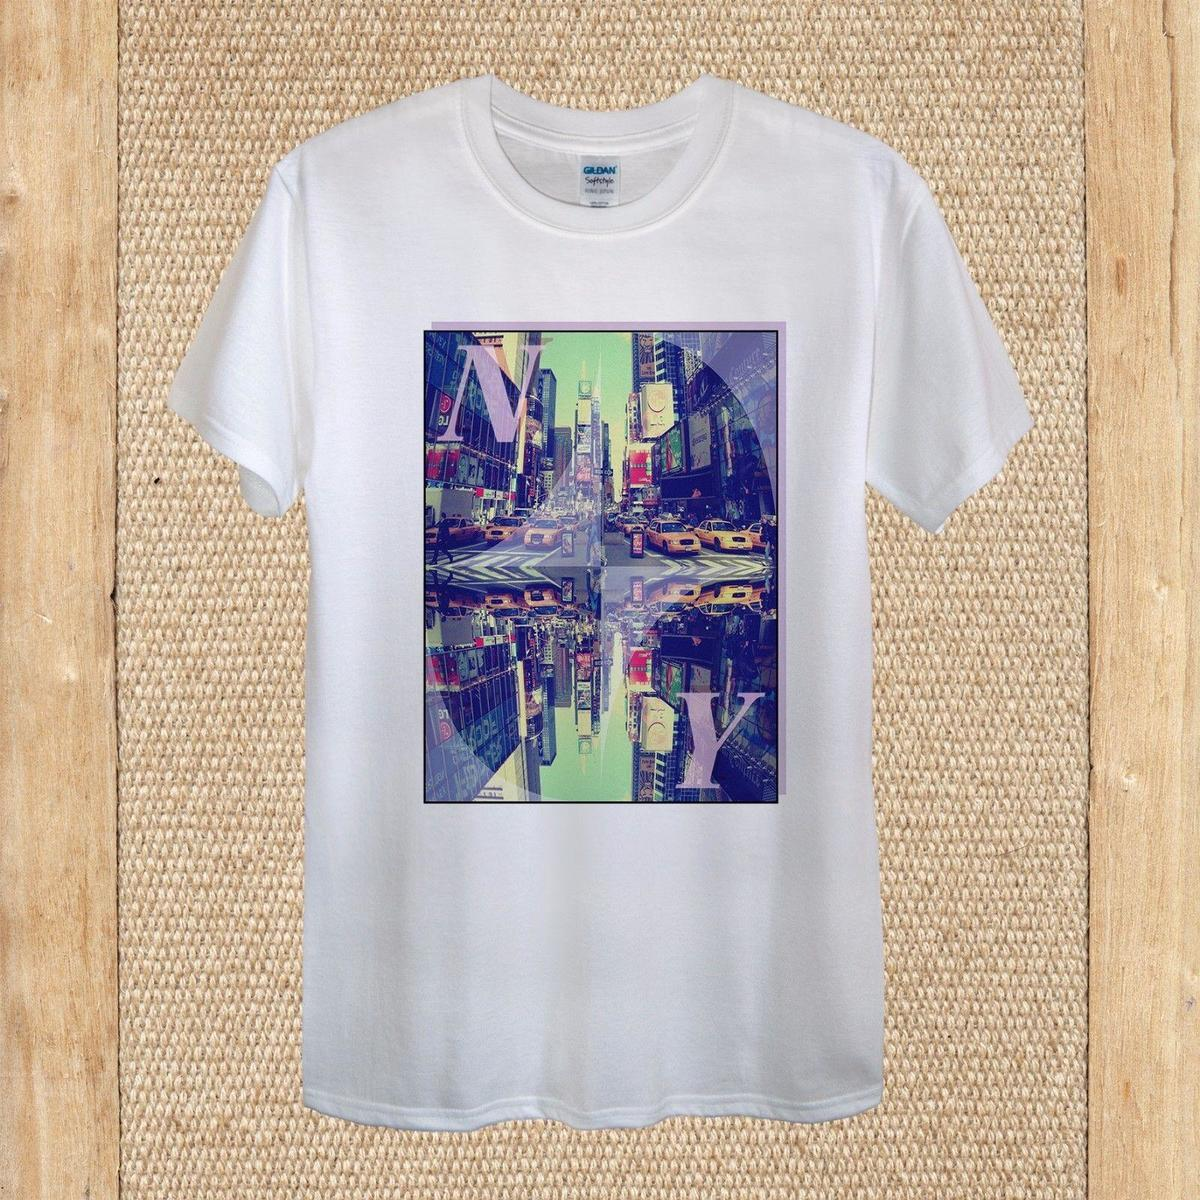 556028c3d97f New York Creative NY T Shirt Design City Travel High Quality Unisex Women  Fitted Best Designer T Shirts Funny Team Shirts From Jie41, $14.67|  DHgate.Com